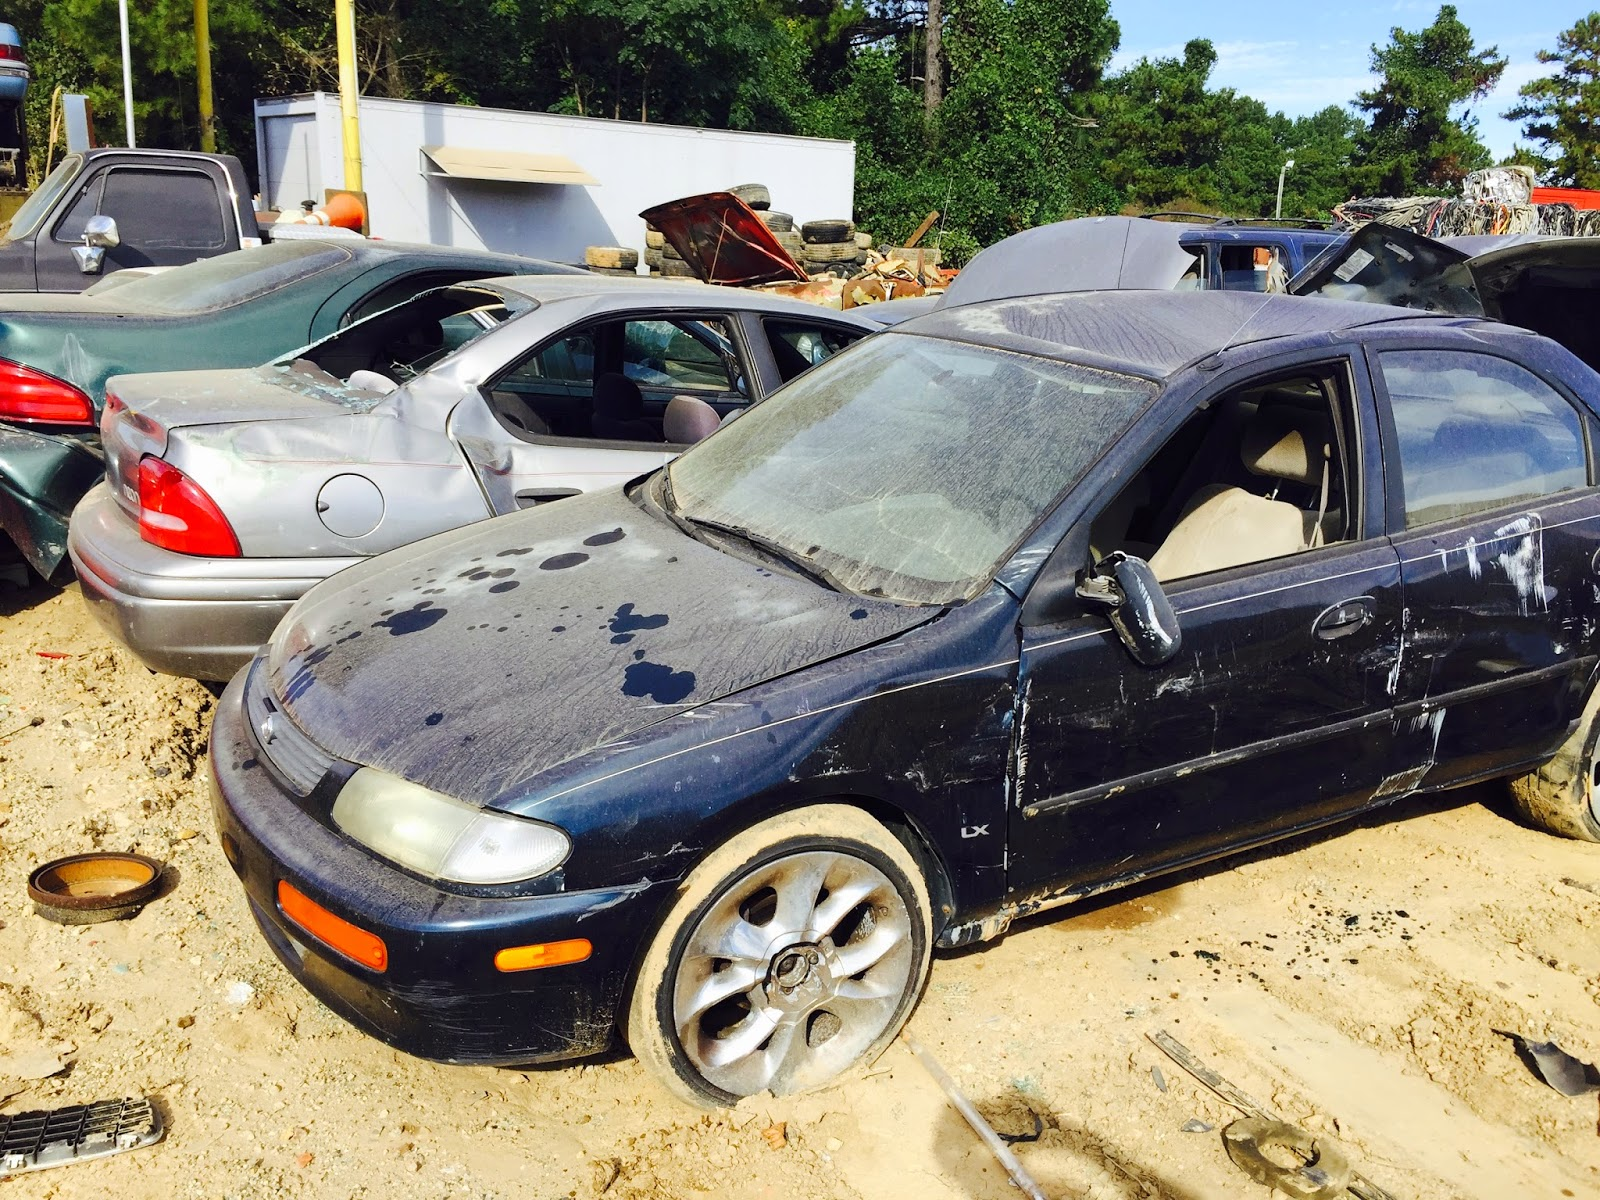 Sell My Junk car for cash, Fast Junk Car removal 919-828-5426